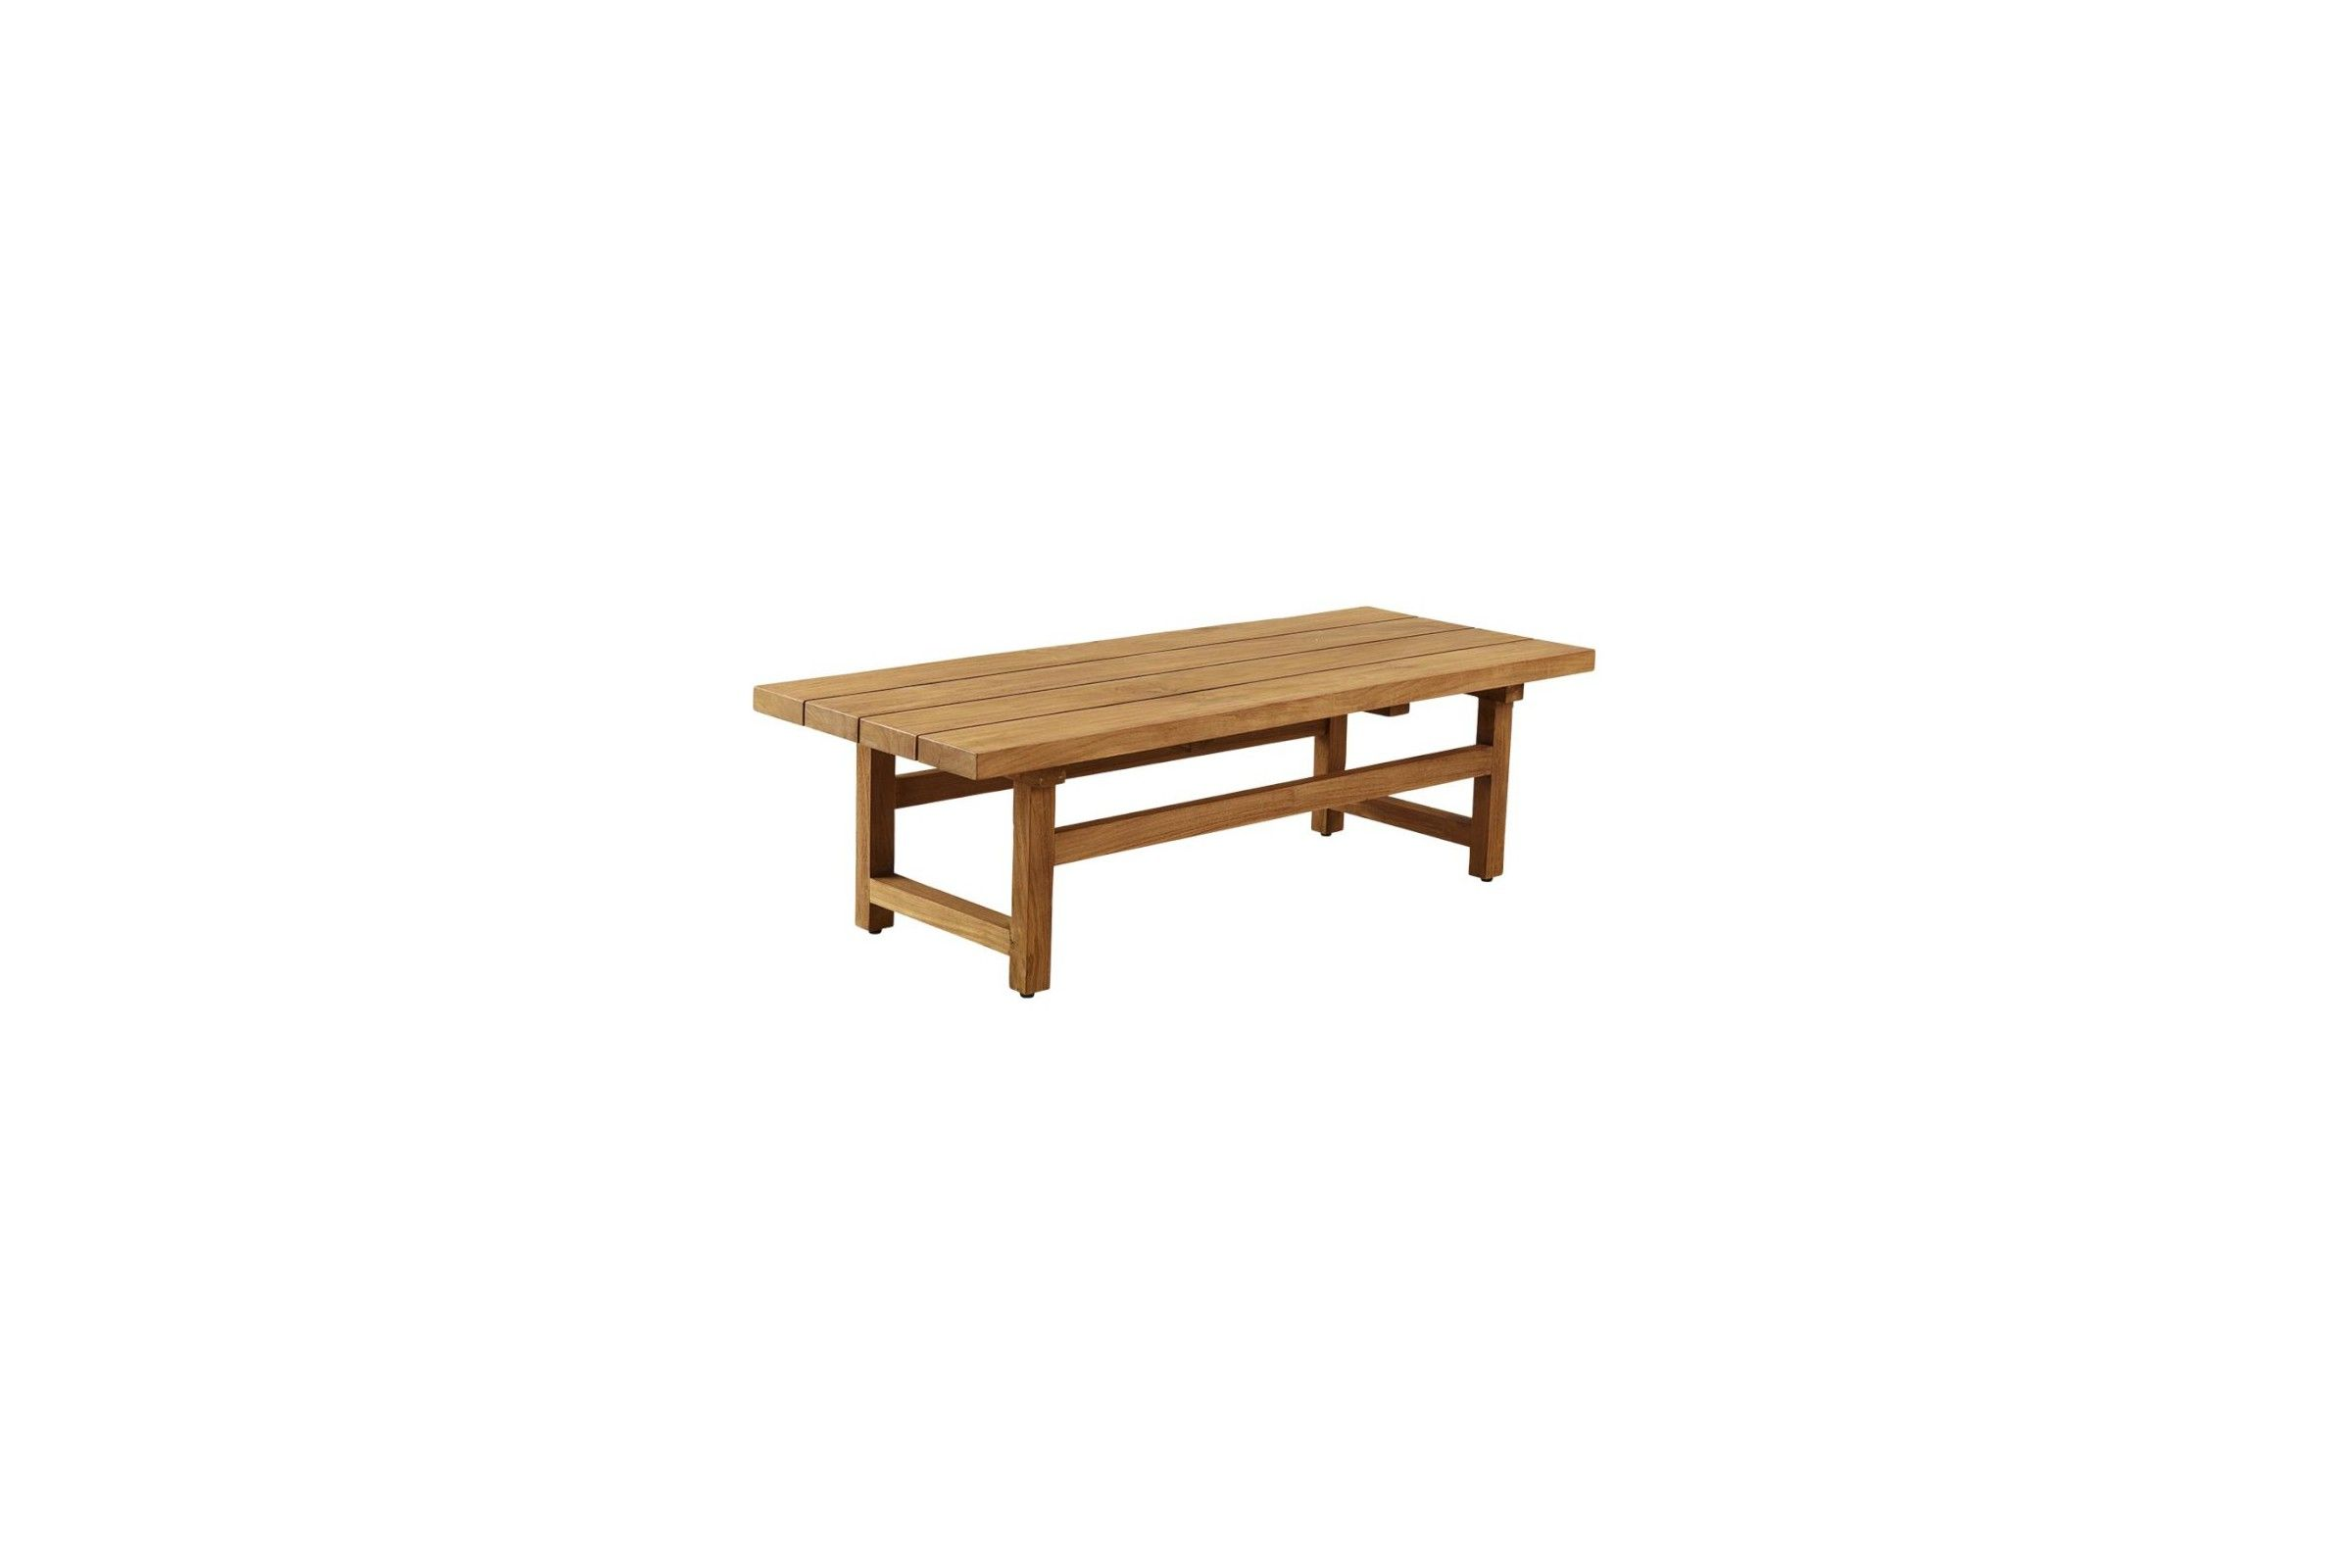 Table basse de jardin en teck massif ancien 154 cm la for Table basse en teck massif